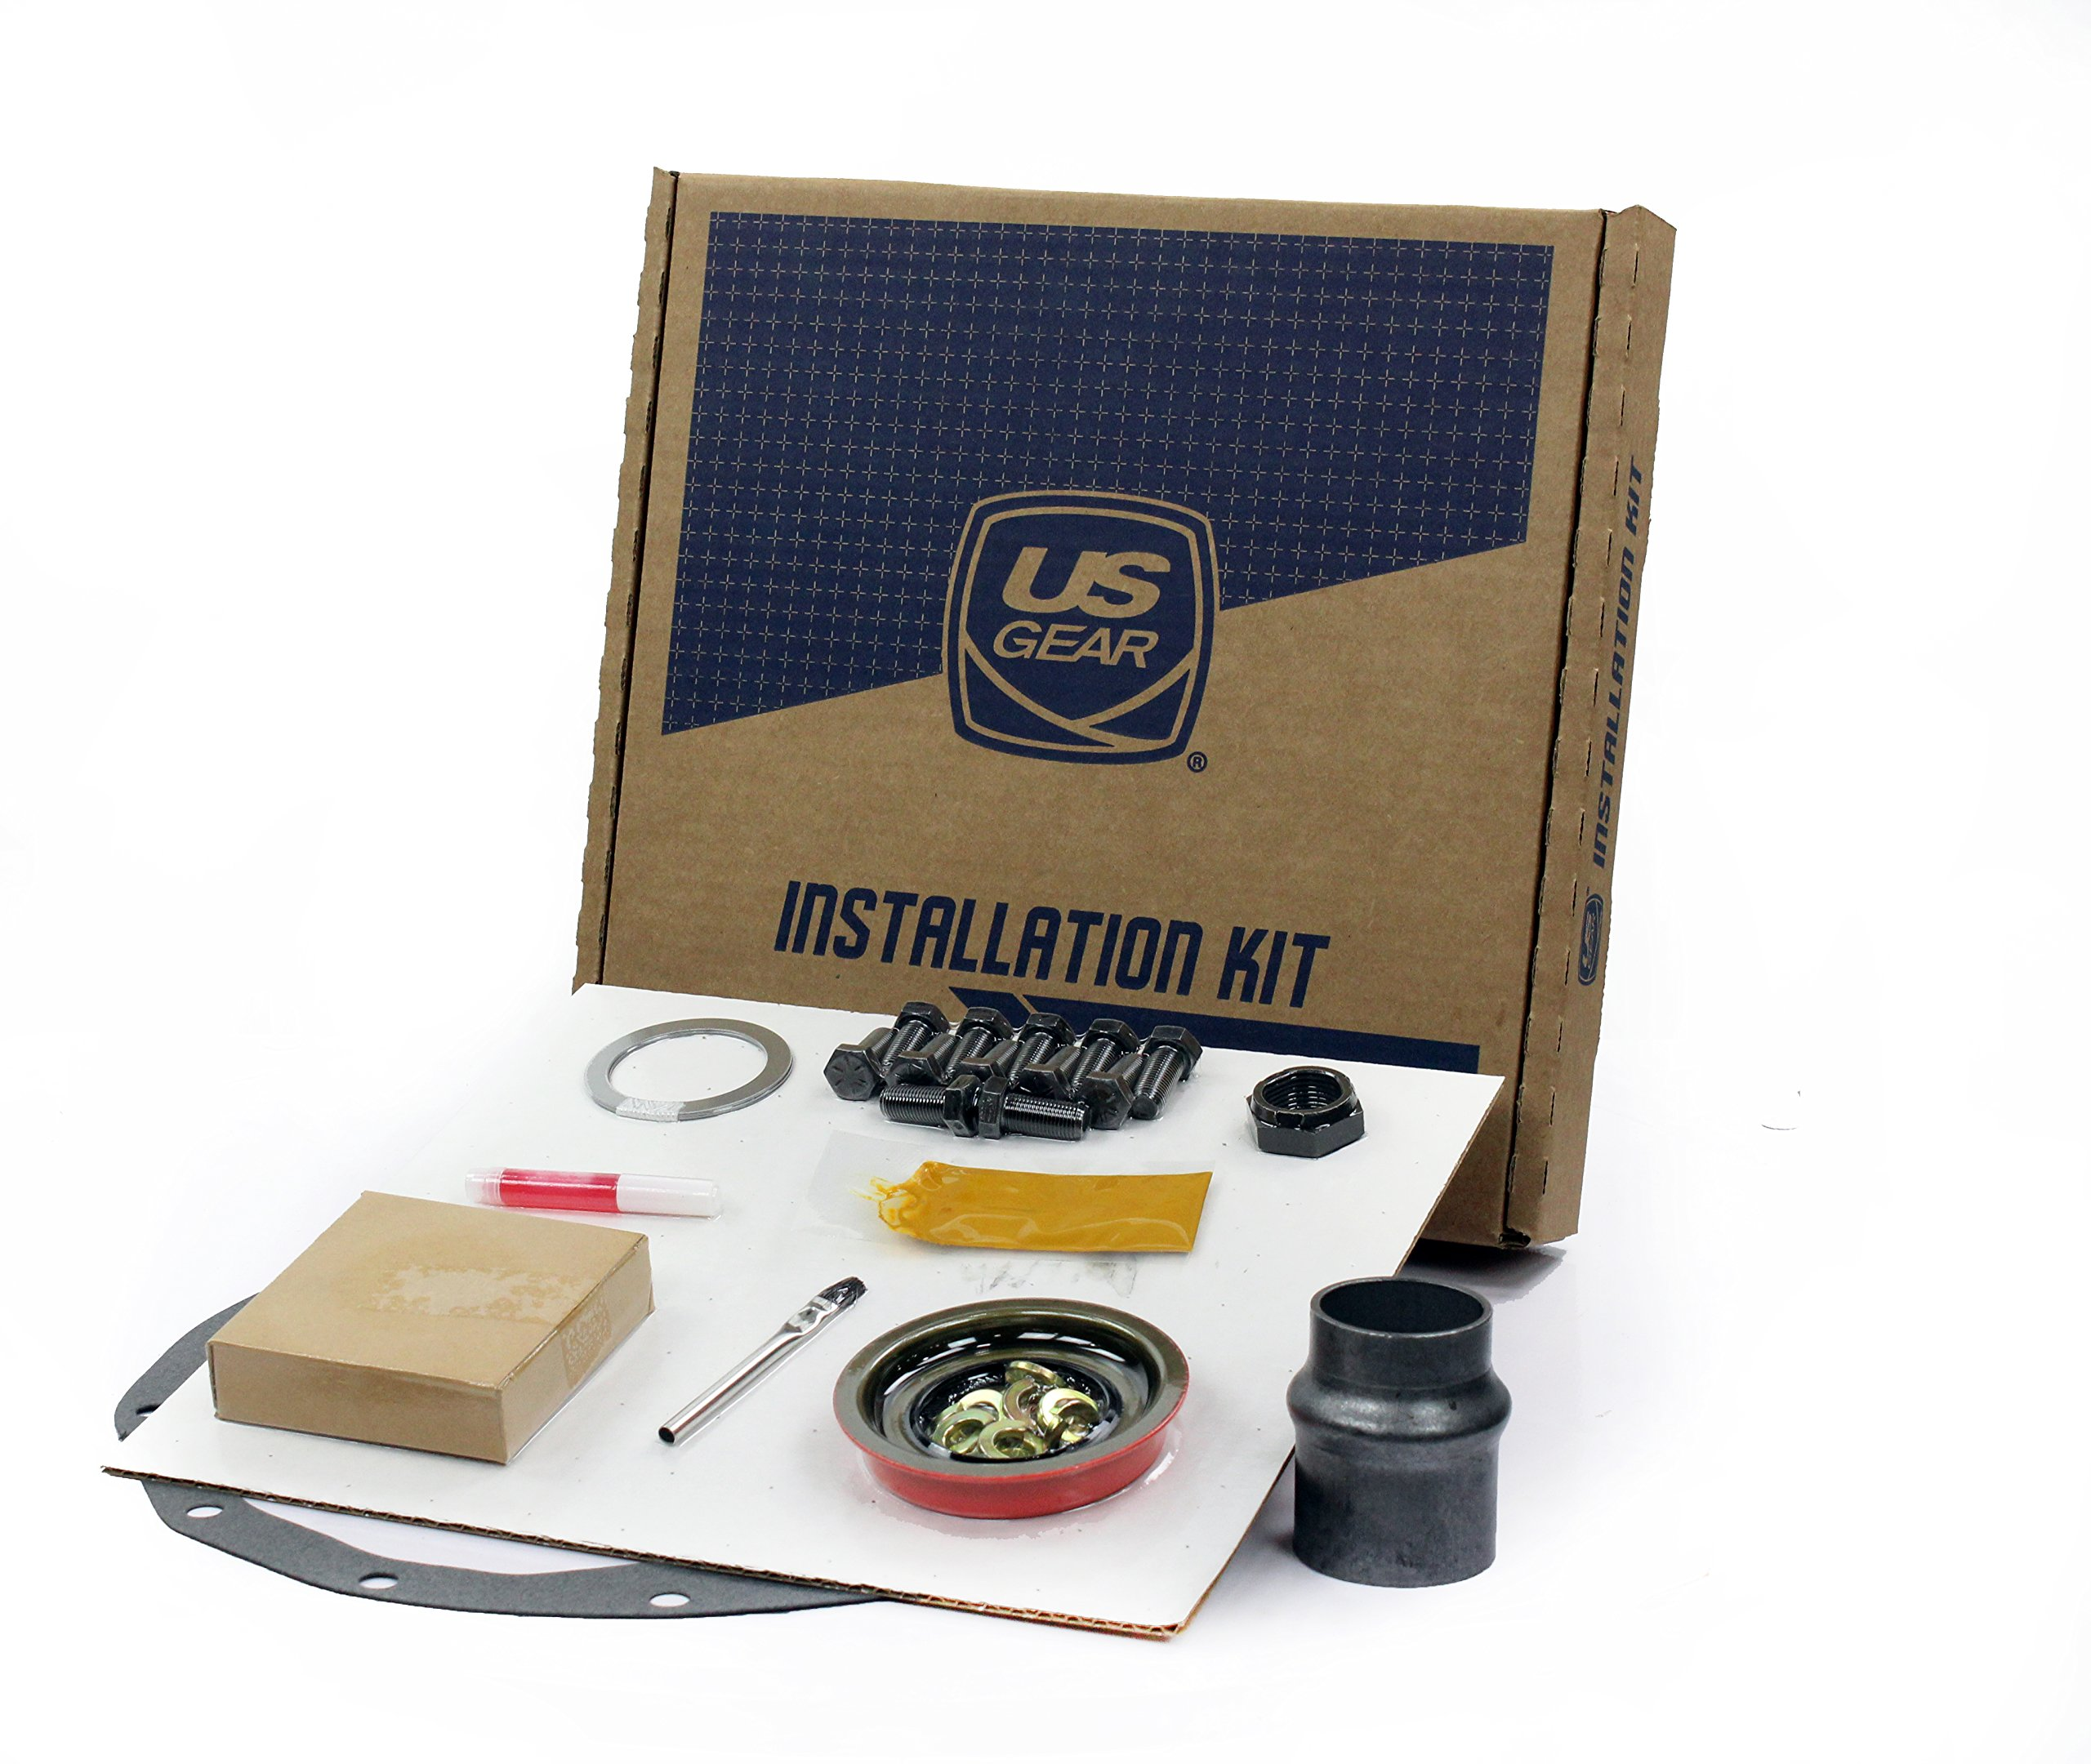 US Gear US2019 Installation Kit